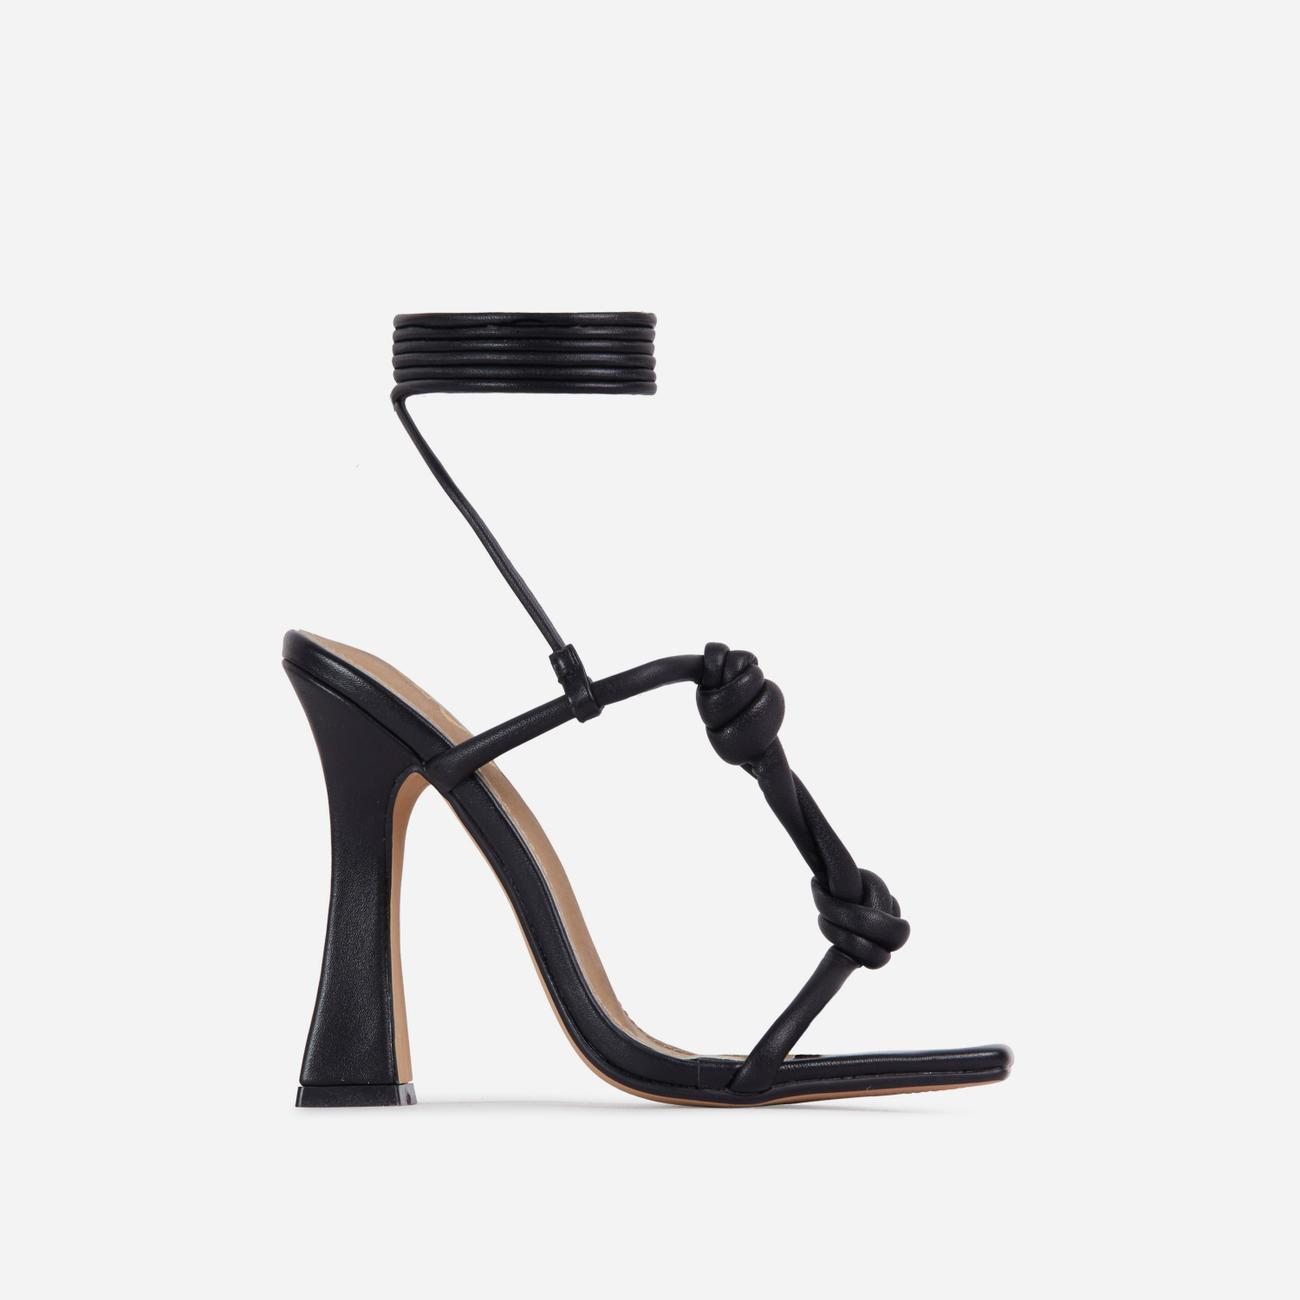 Set-Free Knotted Detail Lace Square Toe Flared Block Heel In Black Faux Leather Image 1